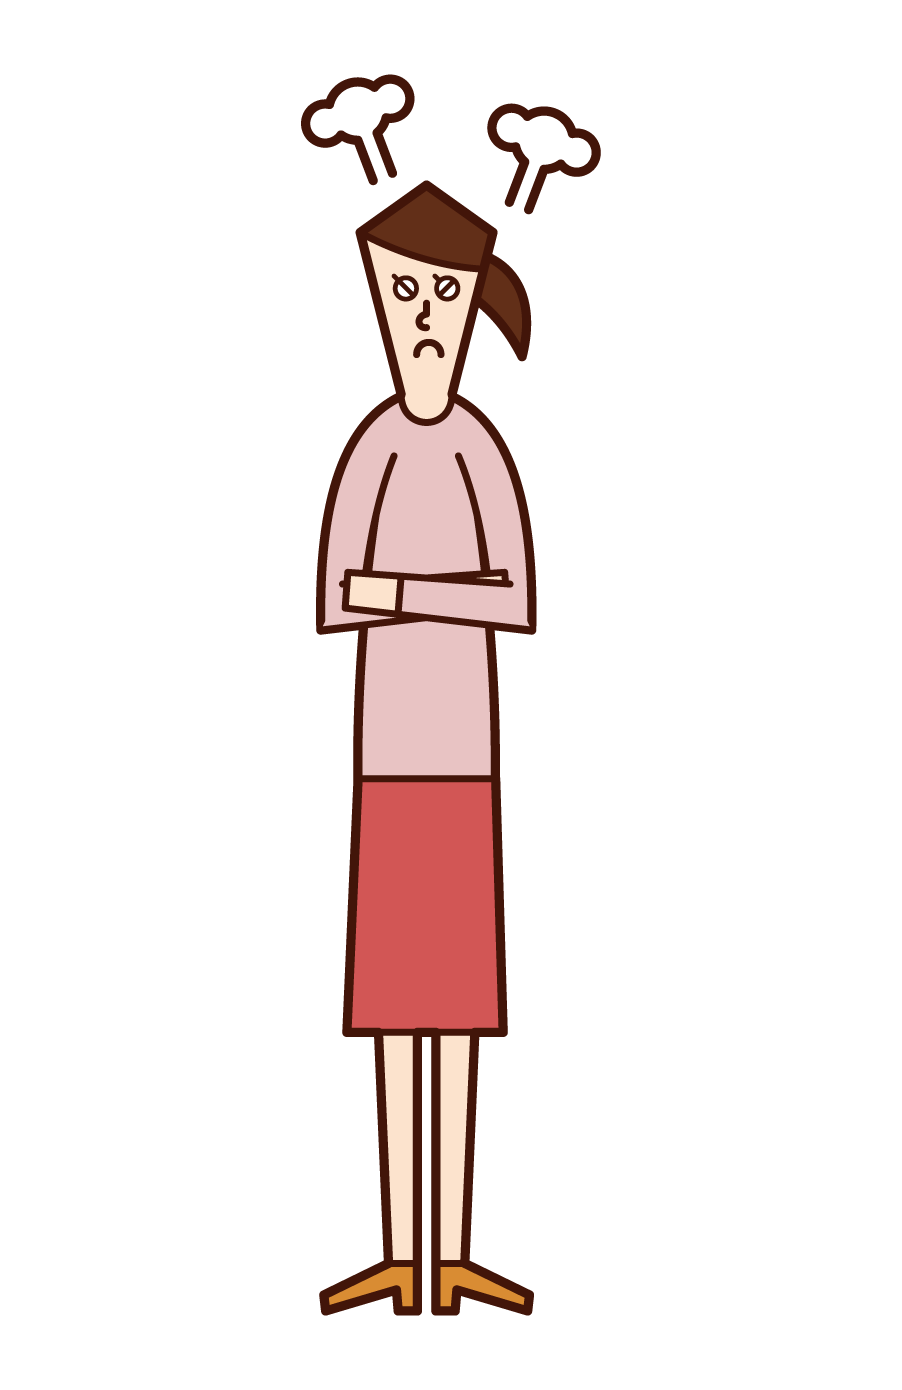 Illustration of a person (woman) who gets angry with his arms folded